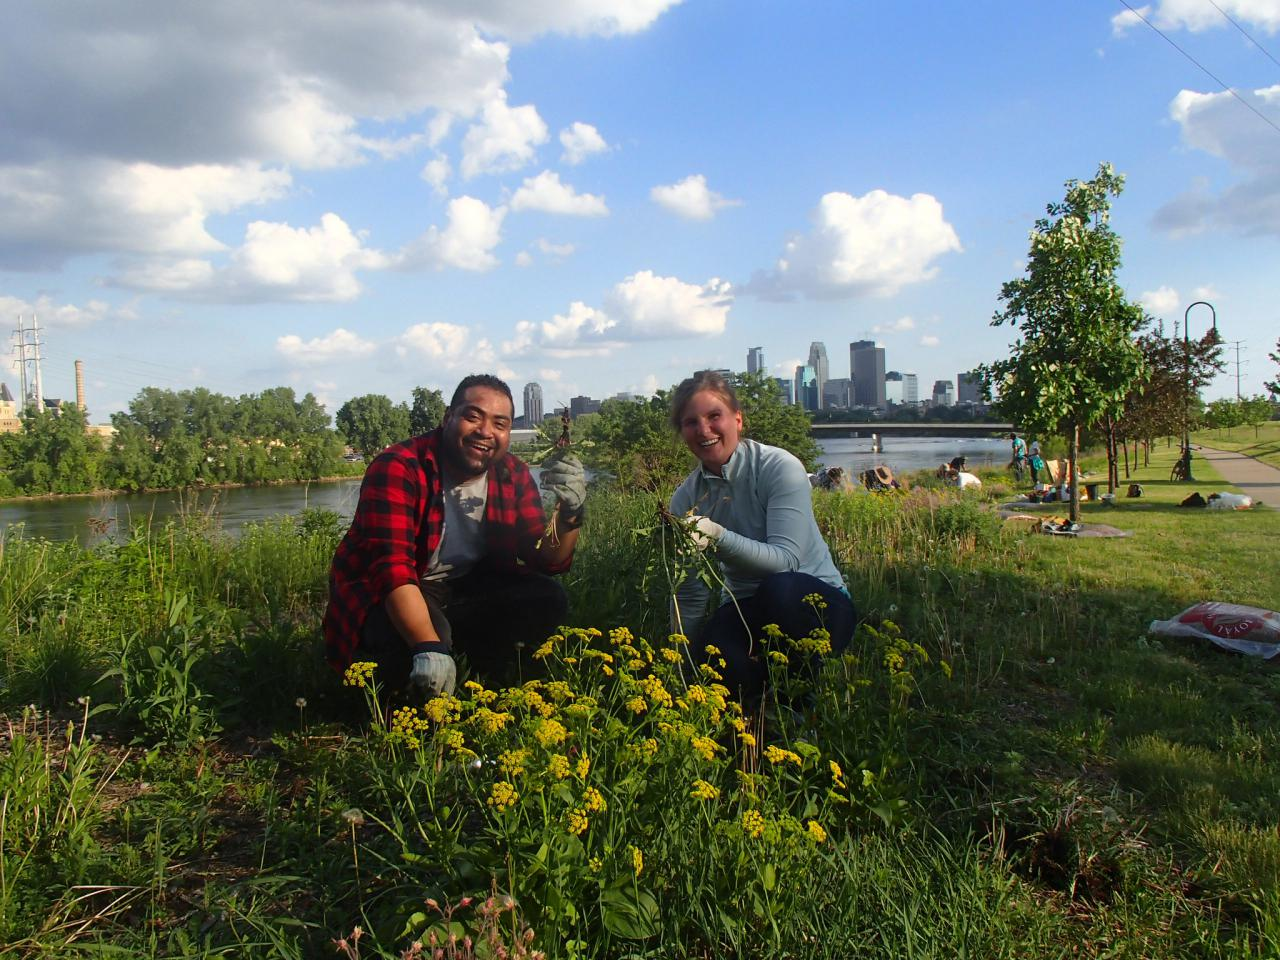 Volunteers tend the prairie at Ole Olson Park with the river and downtown Minneapolis in the background